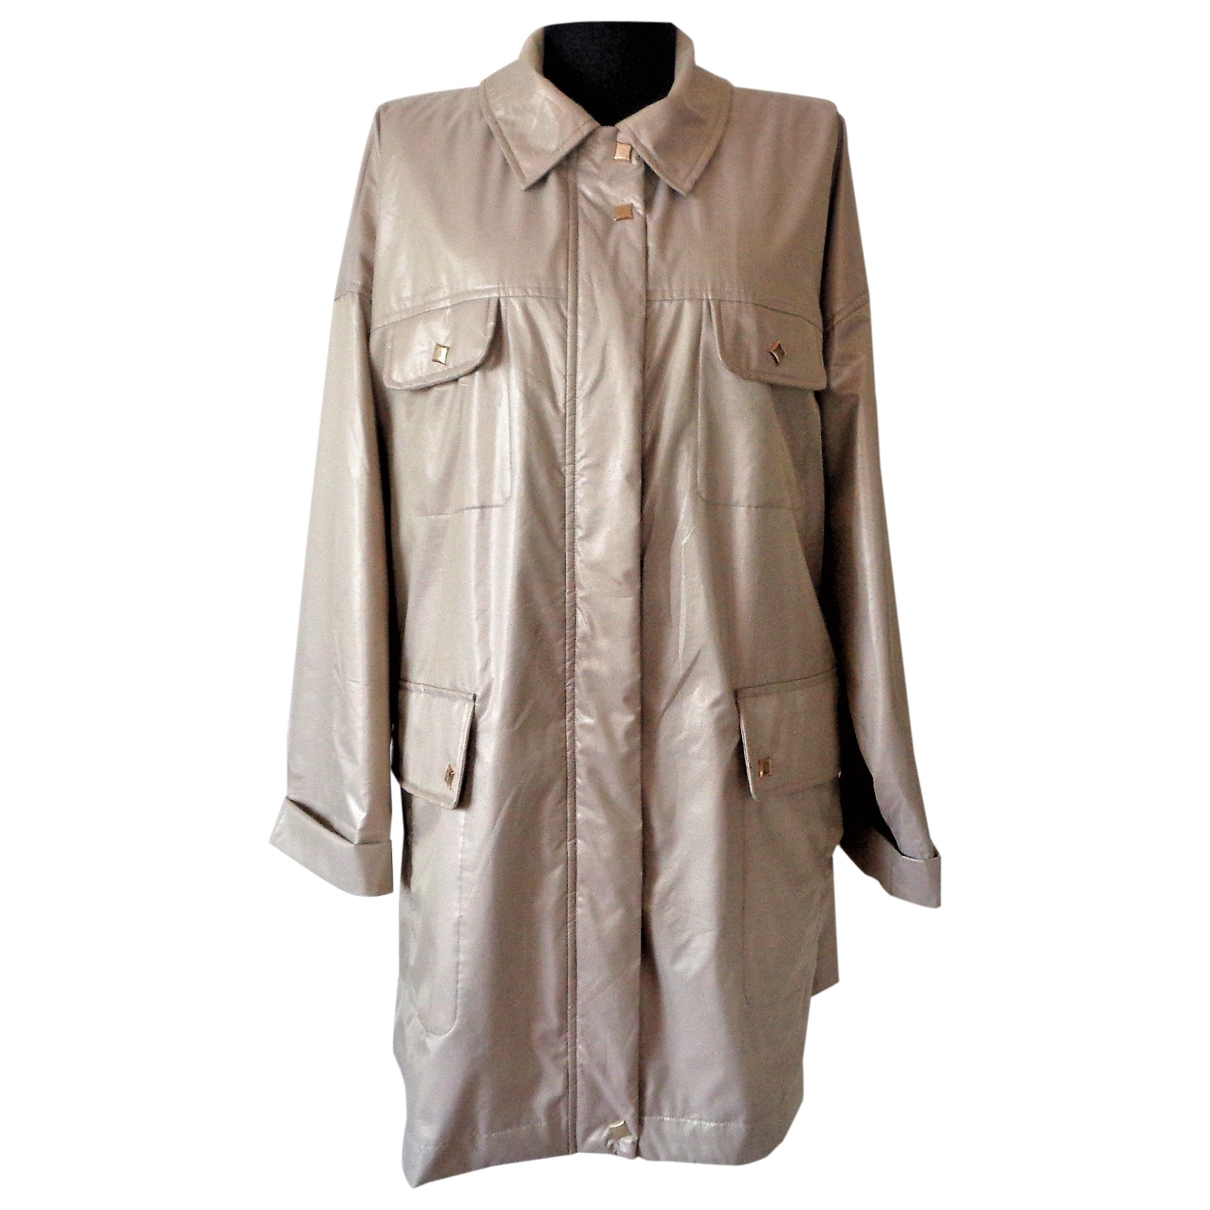 Mcm \N Beige Trench coat for Women 44 IT